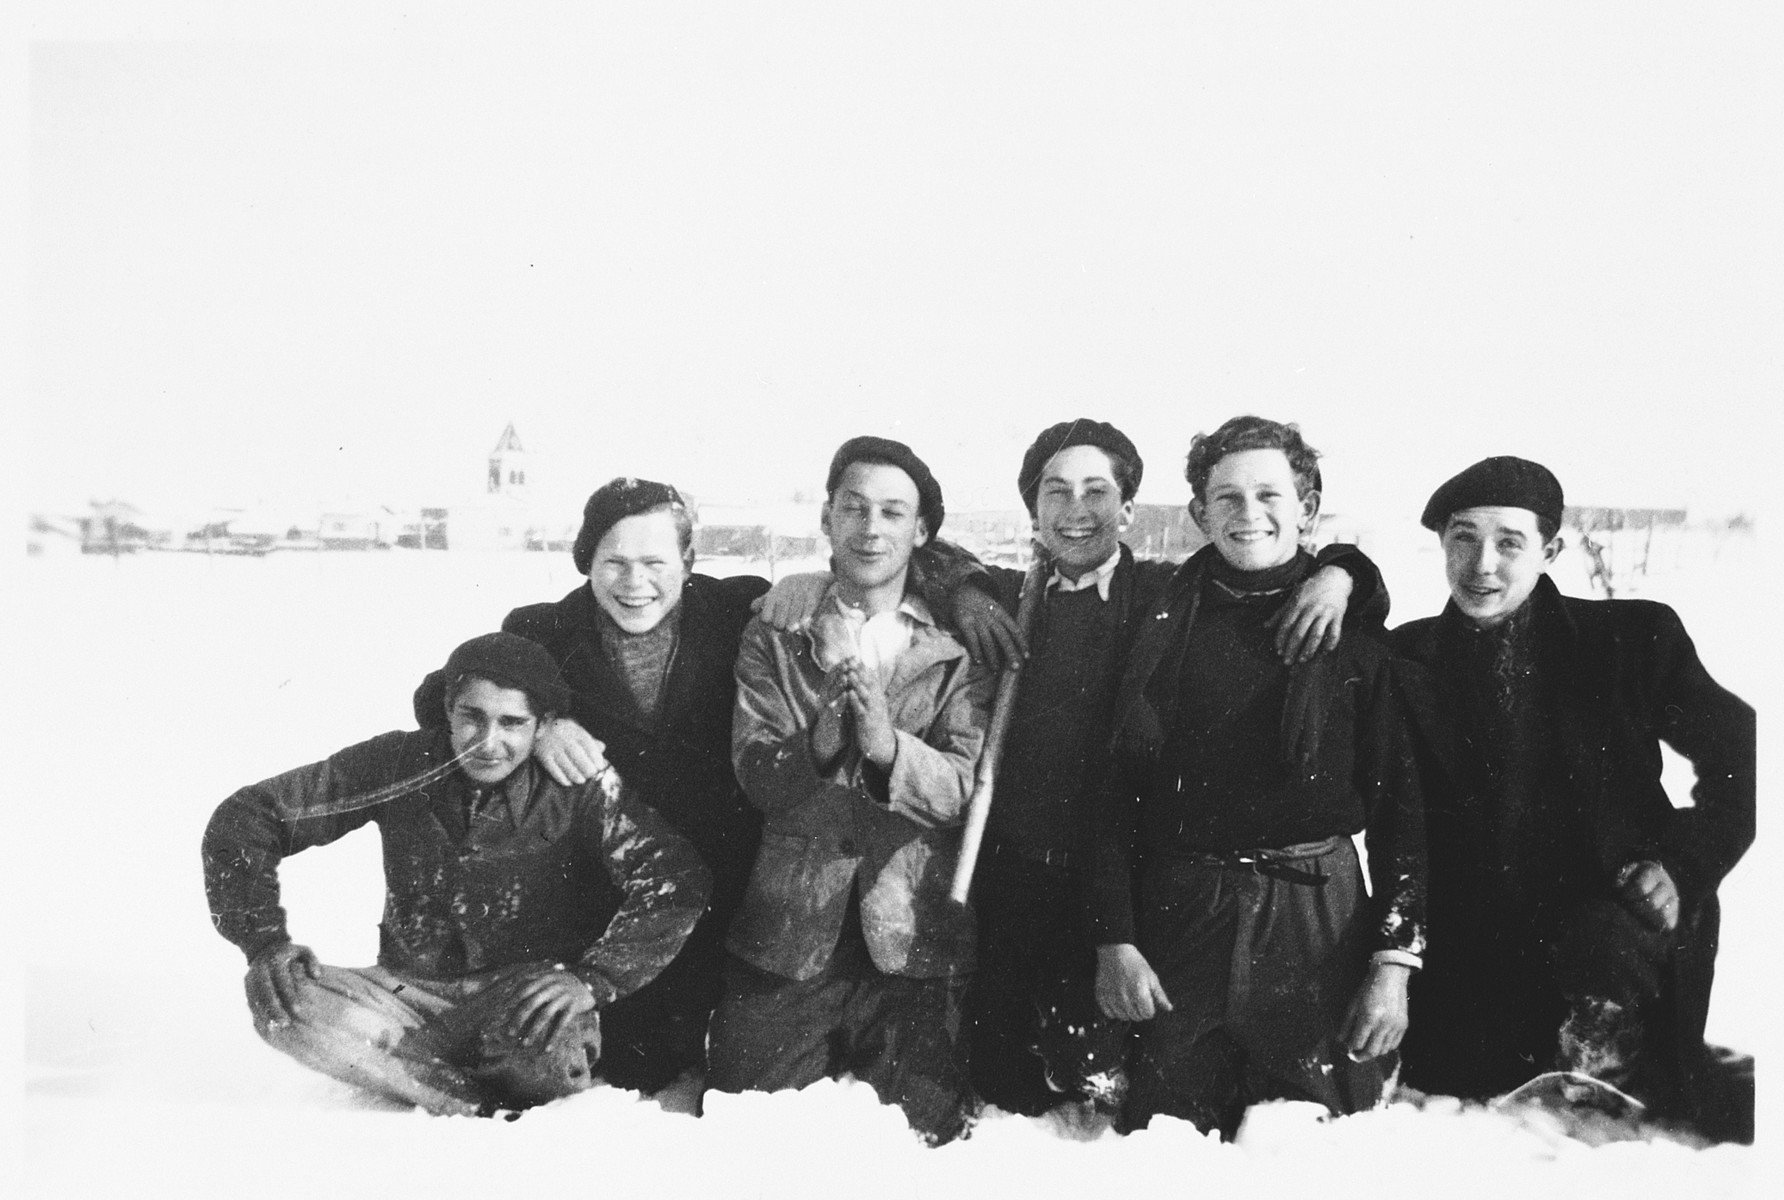 A group of Jewish youth who are living in hiding in the village of Treves, pose in the snow.  Among those pictured are Herbert Karliner (second from the left) and Julien Bluchstein (far right).